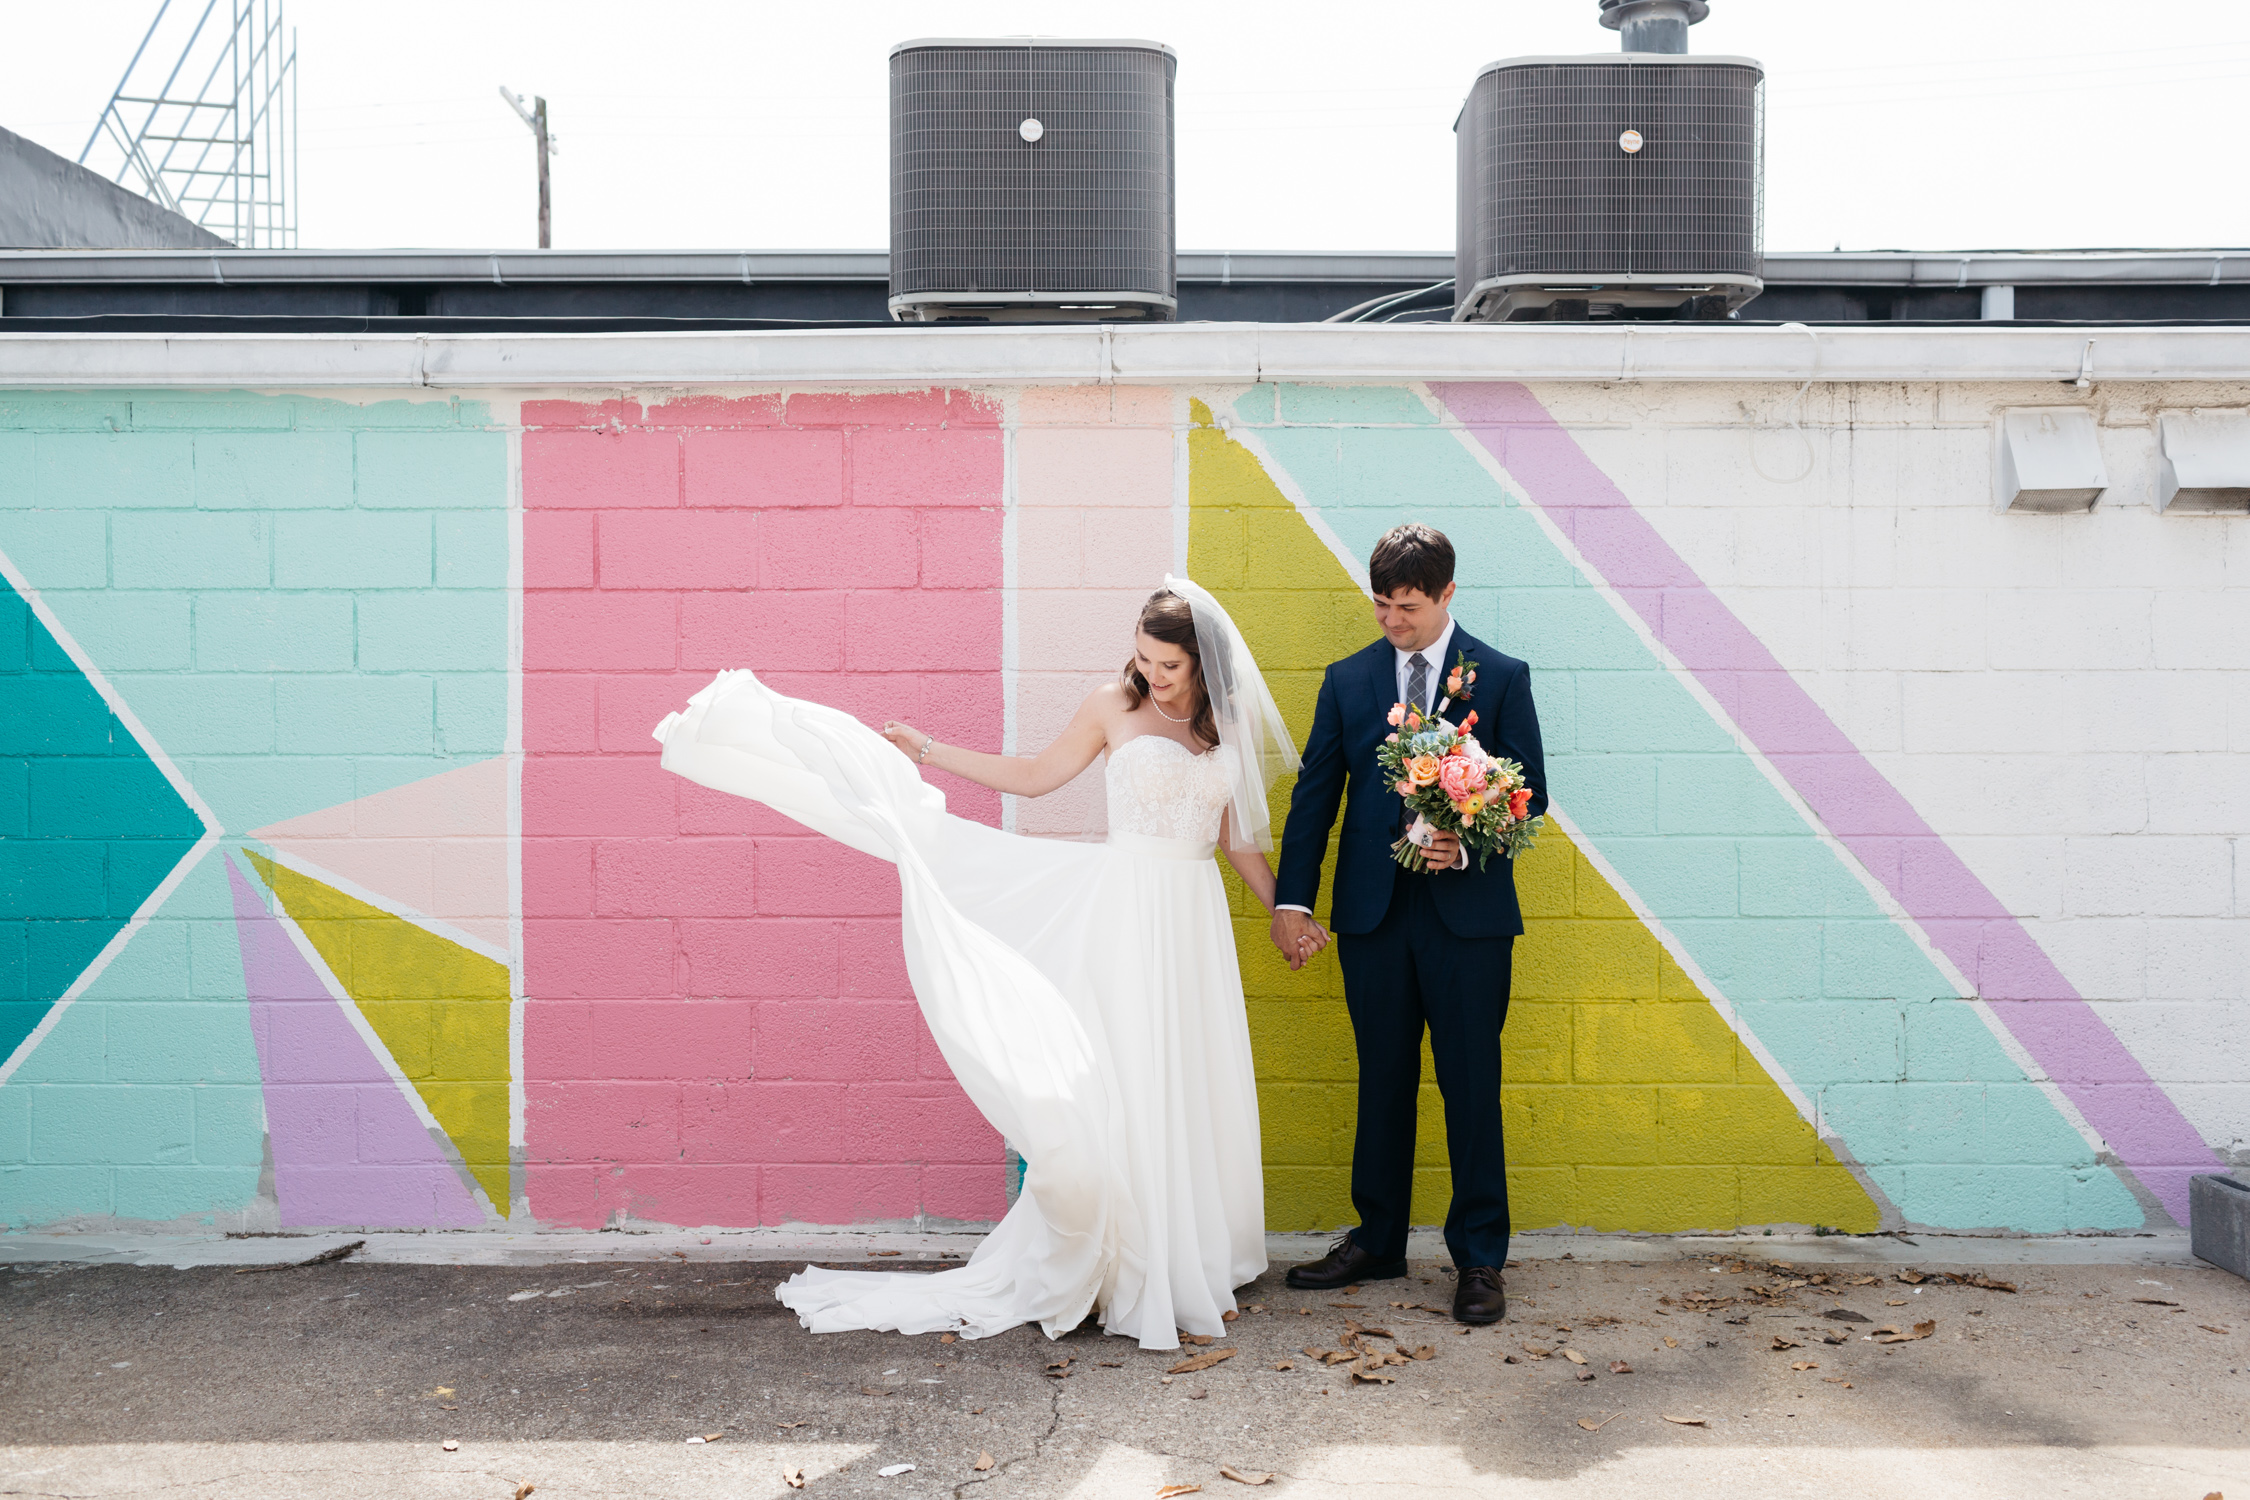 Standard Downtown Knoxville Wedding Venue Central Avenue Happy Holler The Hive Mural